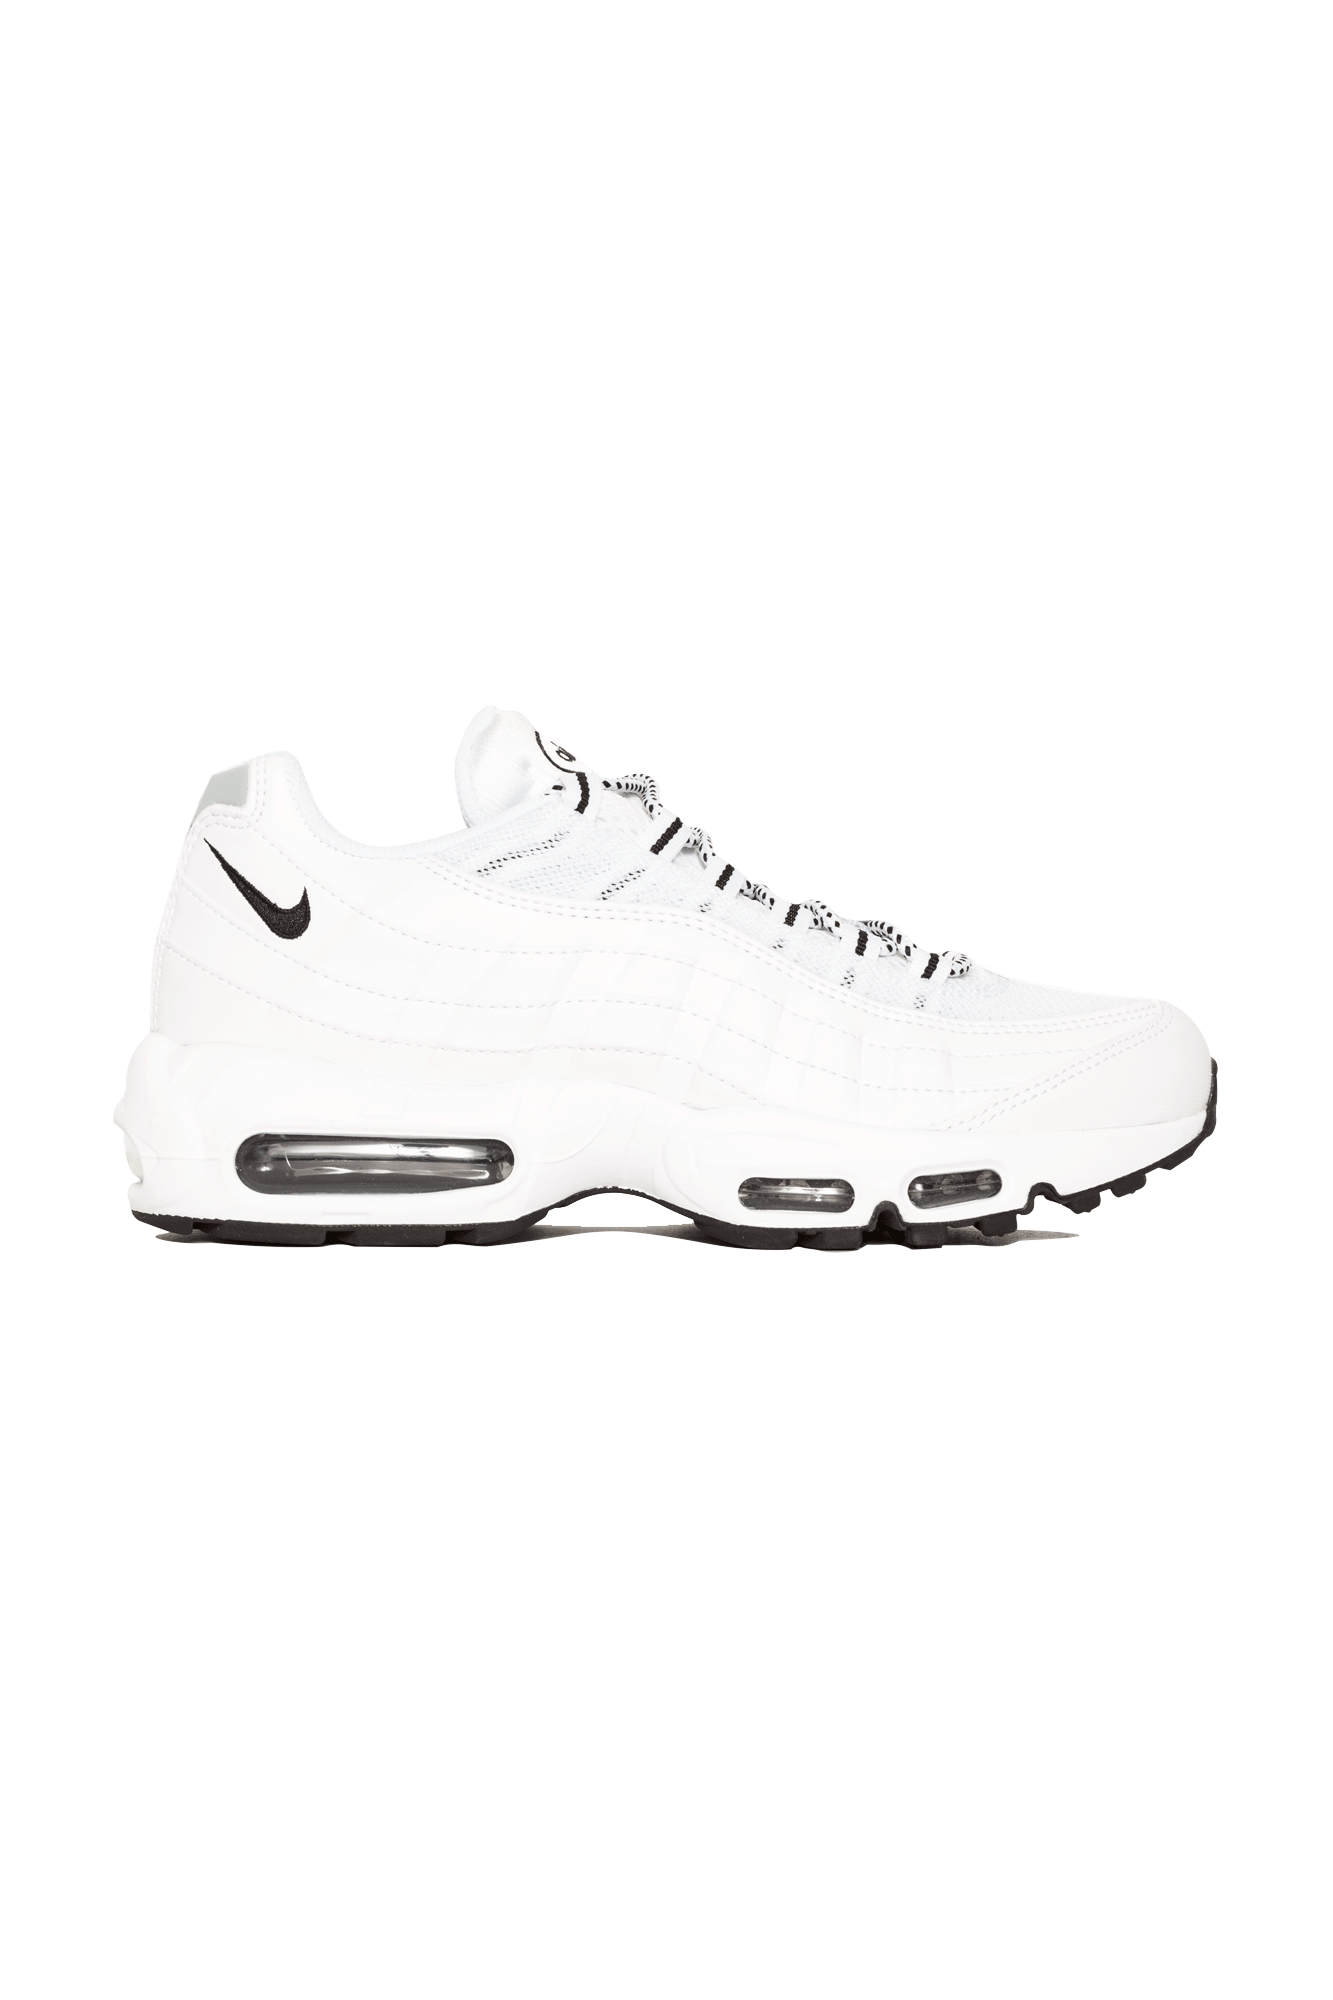 Sneakers Nike Air Max 95 White - One Block Down